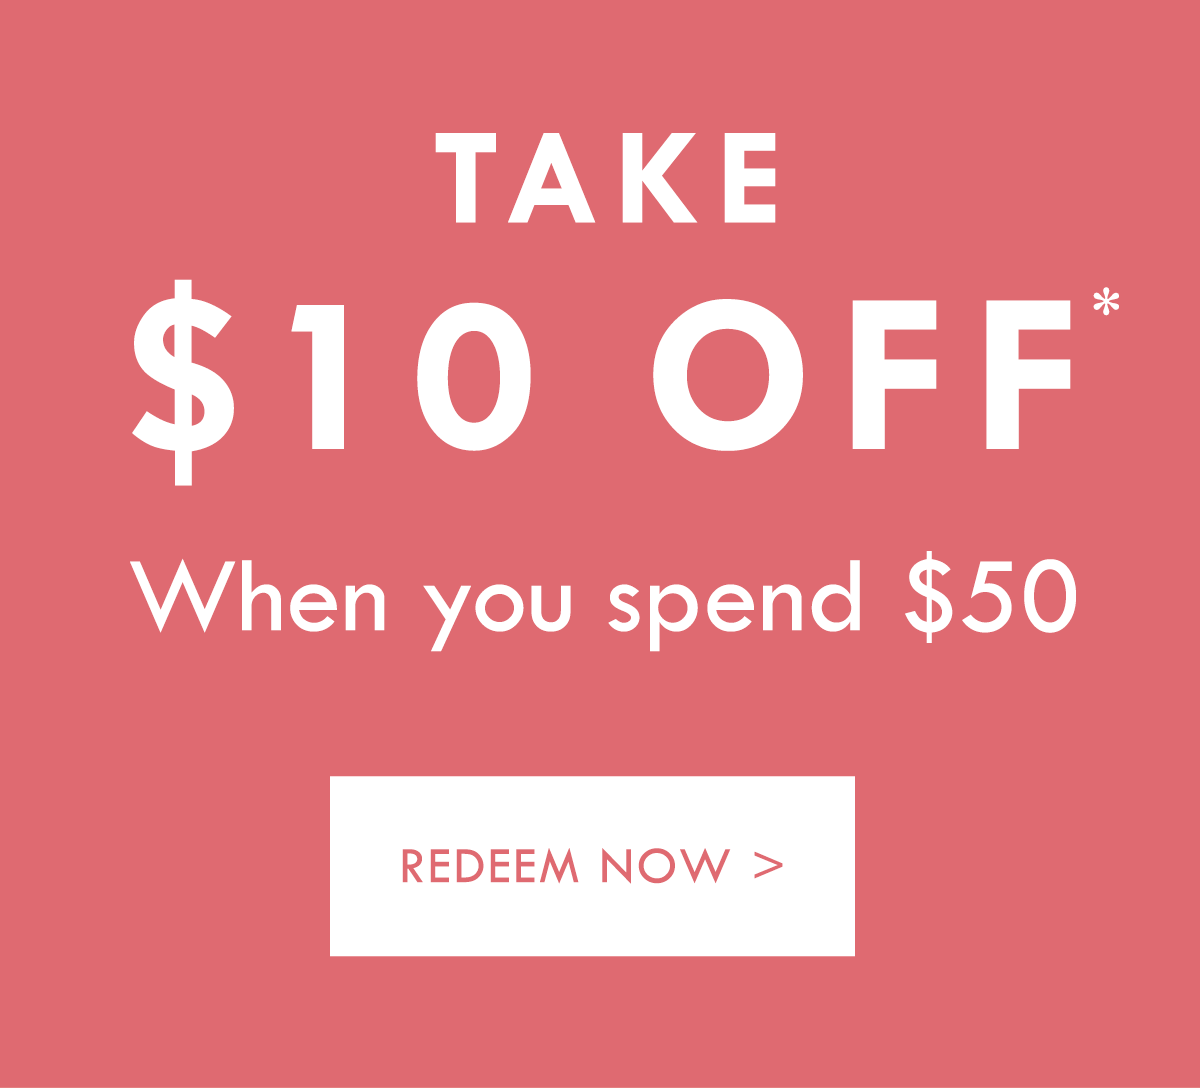 Take $10 off* When you spend $50. Redeem Now.